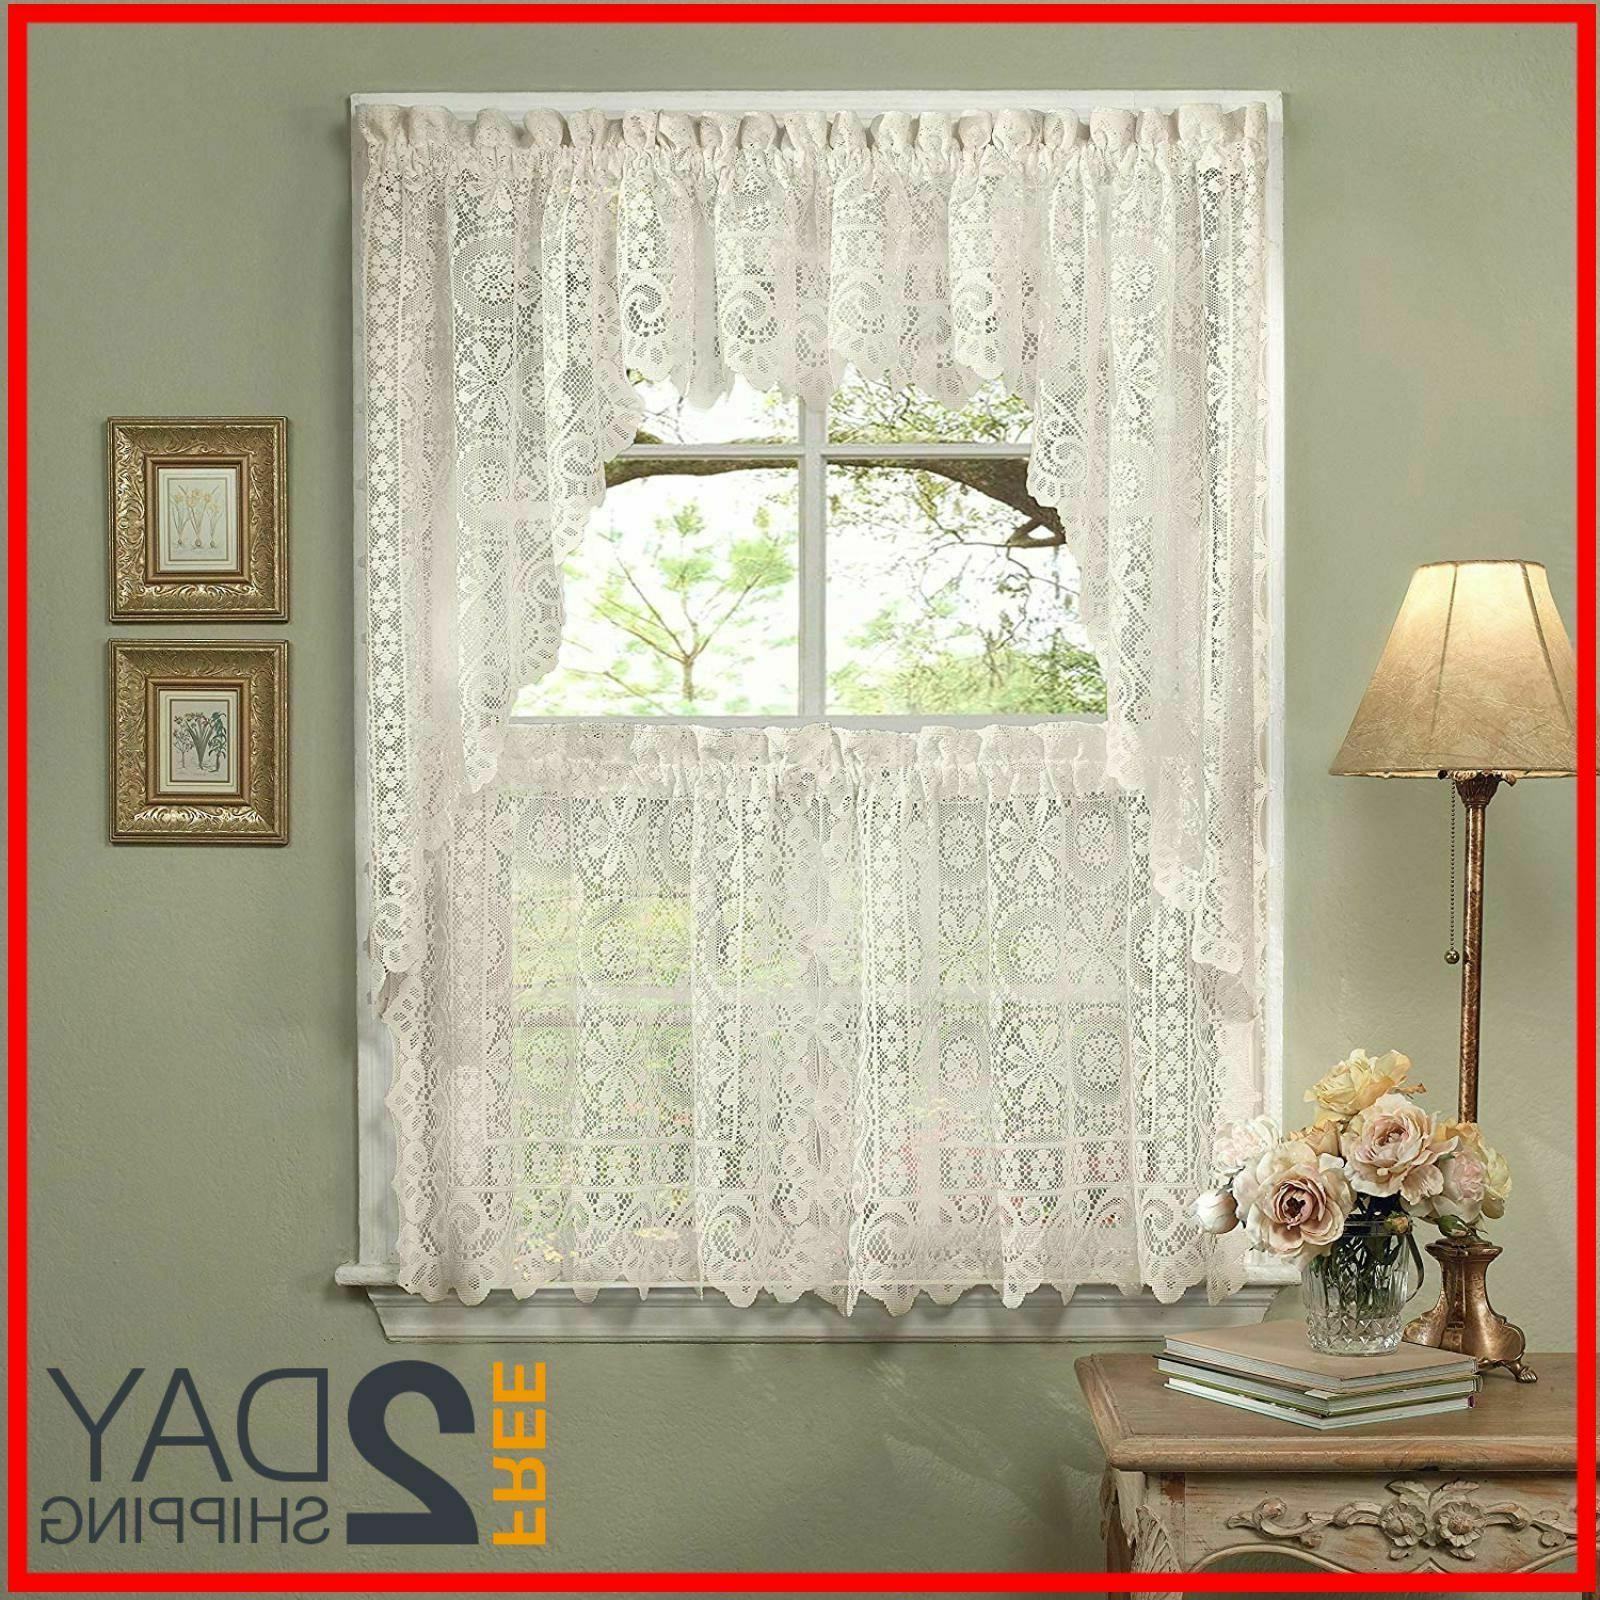 5 Pc Kitchen Curtain Set, Swag Pair, Valance, Choice of 24""